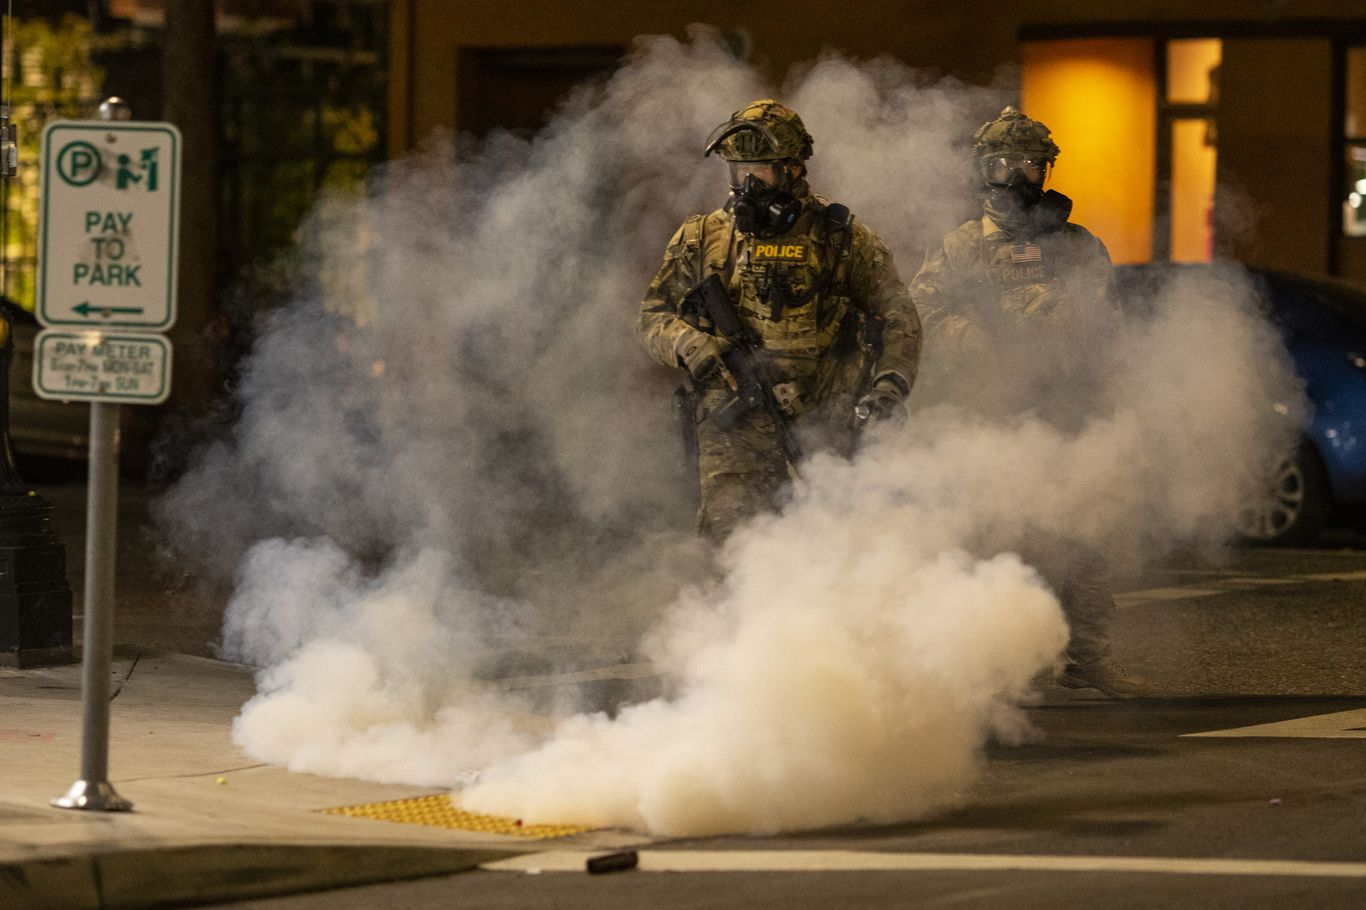 In photos: Federal force prompts backlash from Portland protesters thumbnail